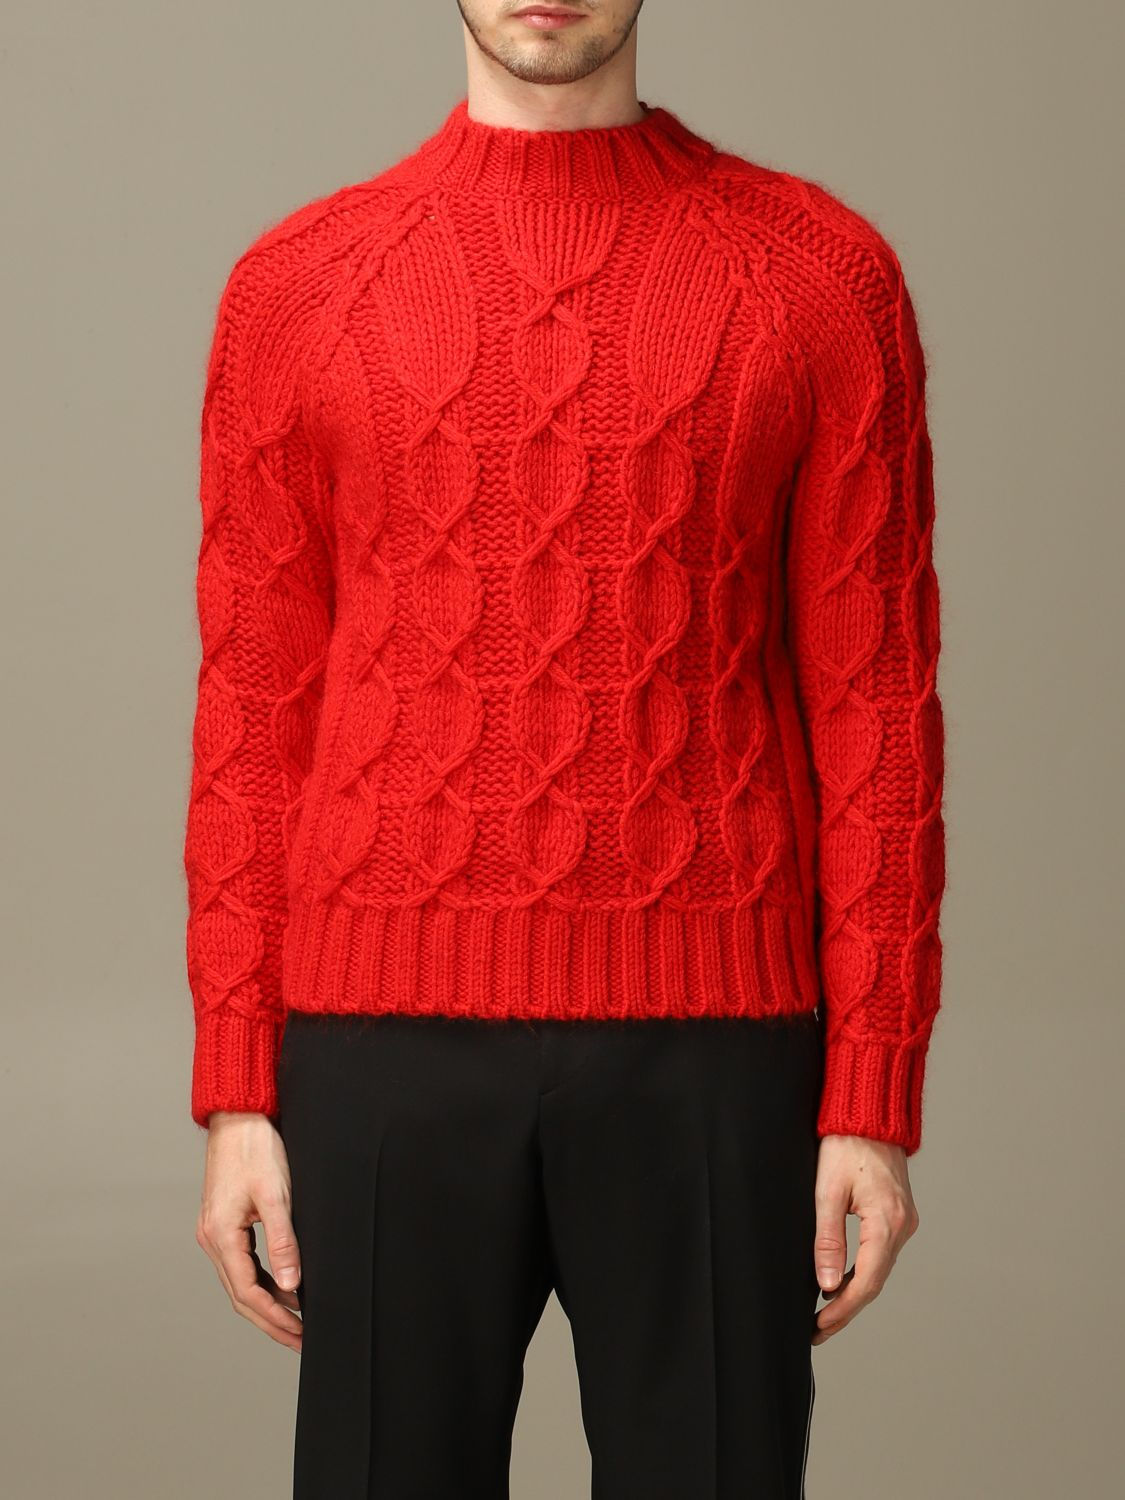 Sweater Saint Laurent: Saint Laurent cable sweater in Mohair wool red 1